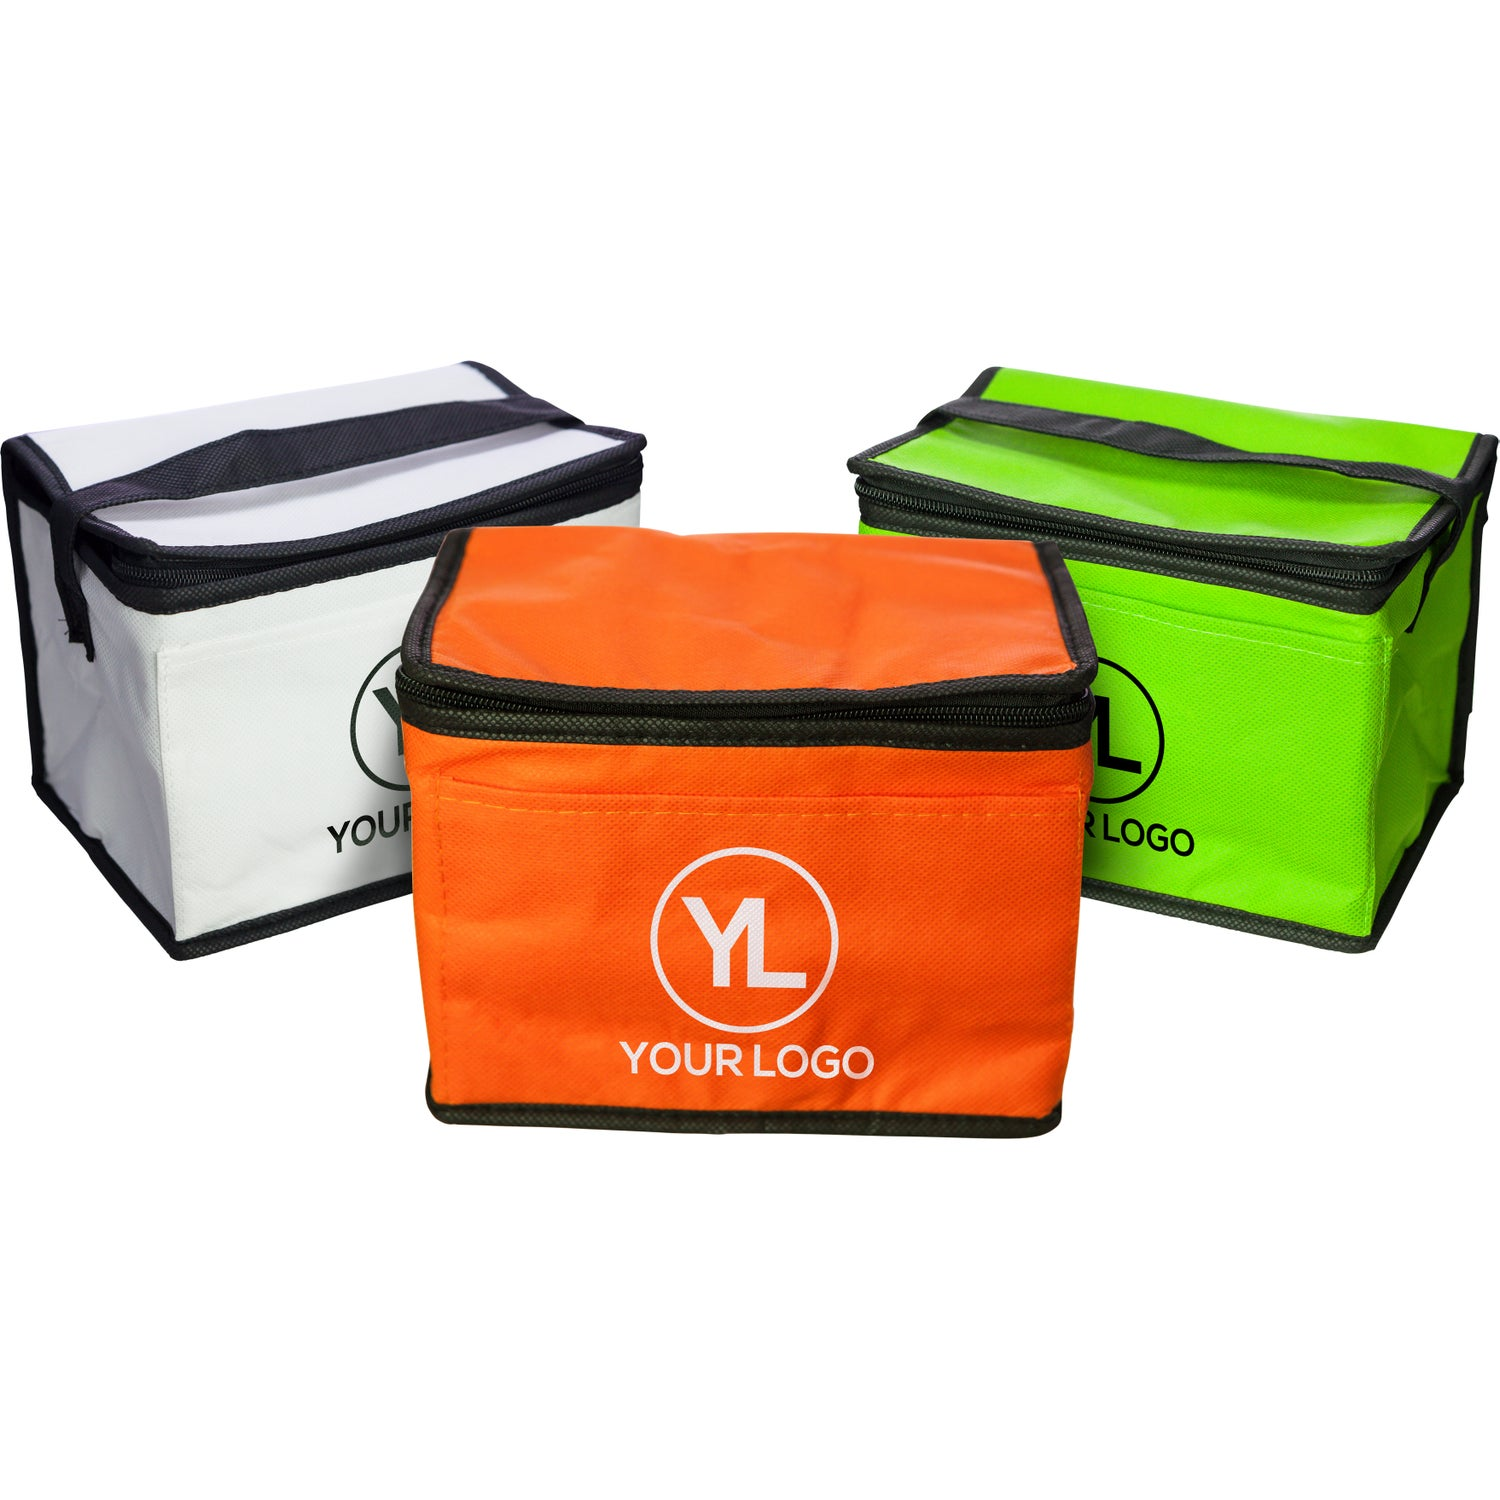 6 Pack Cooler ~ Non woven cooler bag pack promotional coolers ea